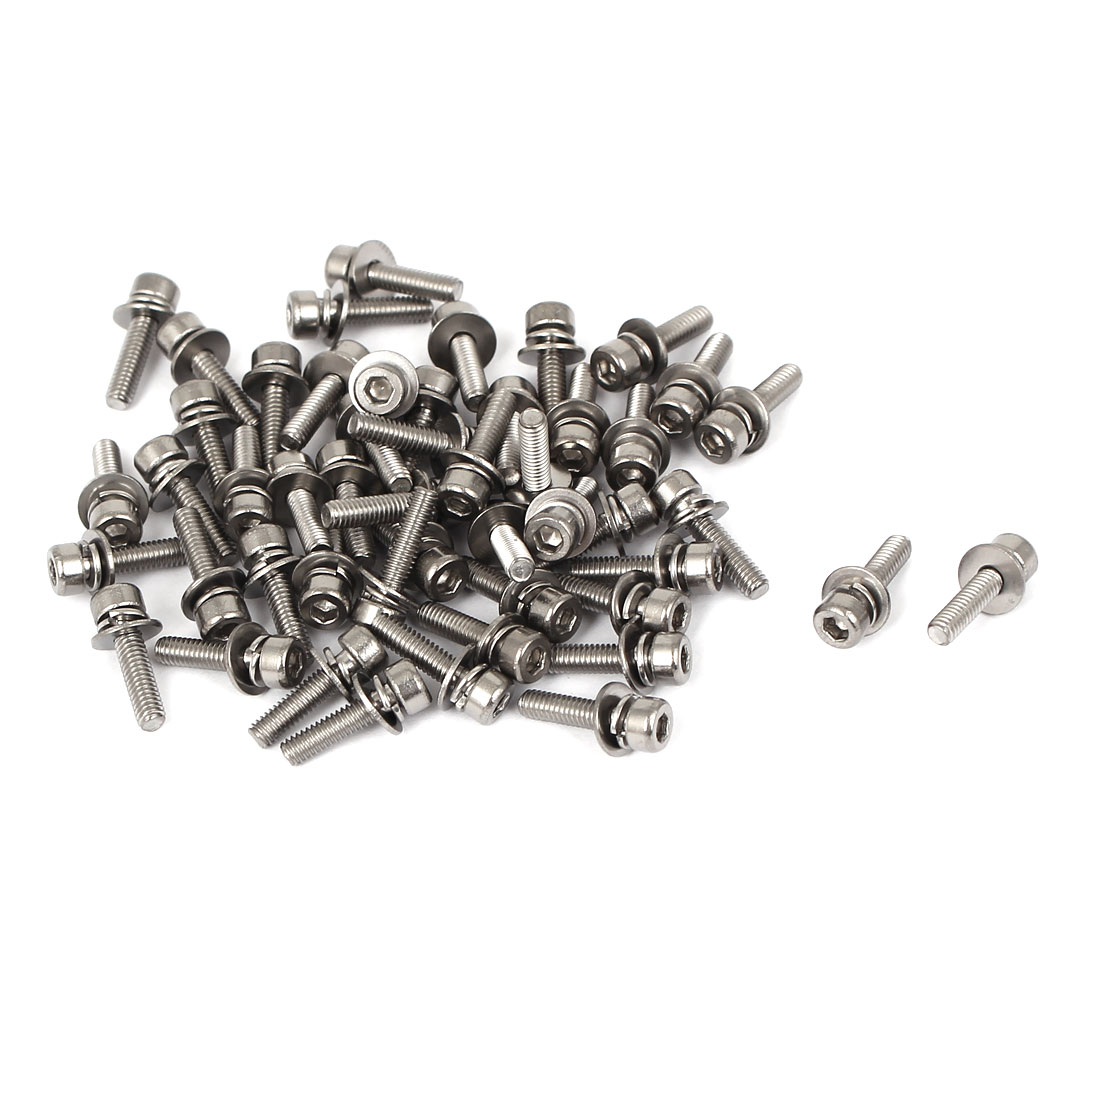 12mm Long M2.5 x 10mm Thread Hex Socket Head Cap Screw w Washer 50 Pcs